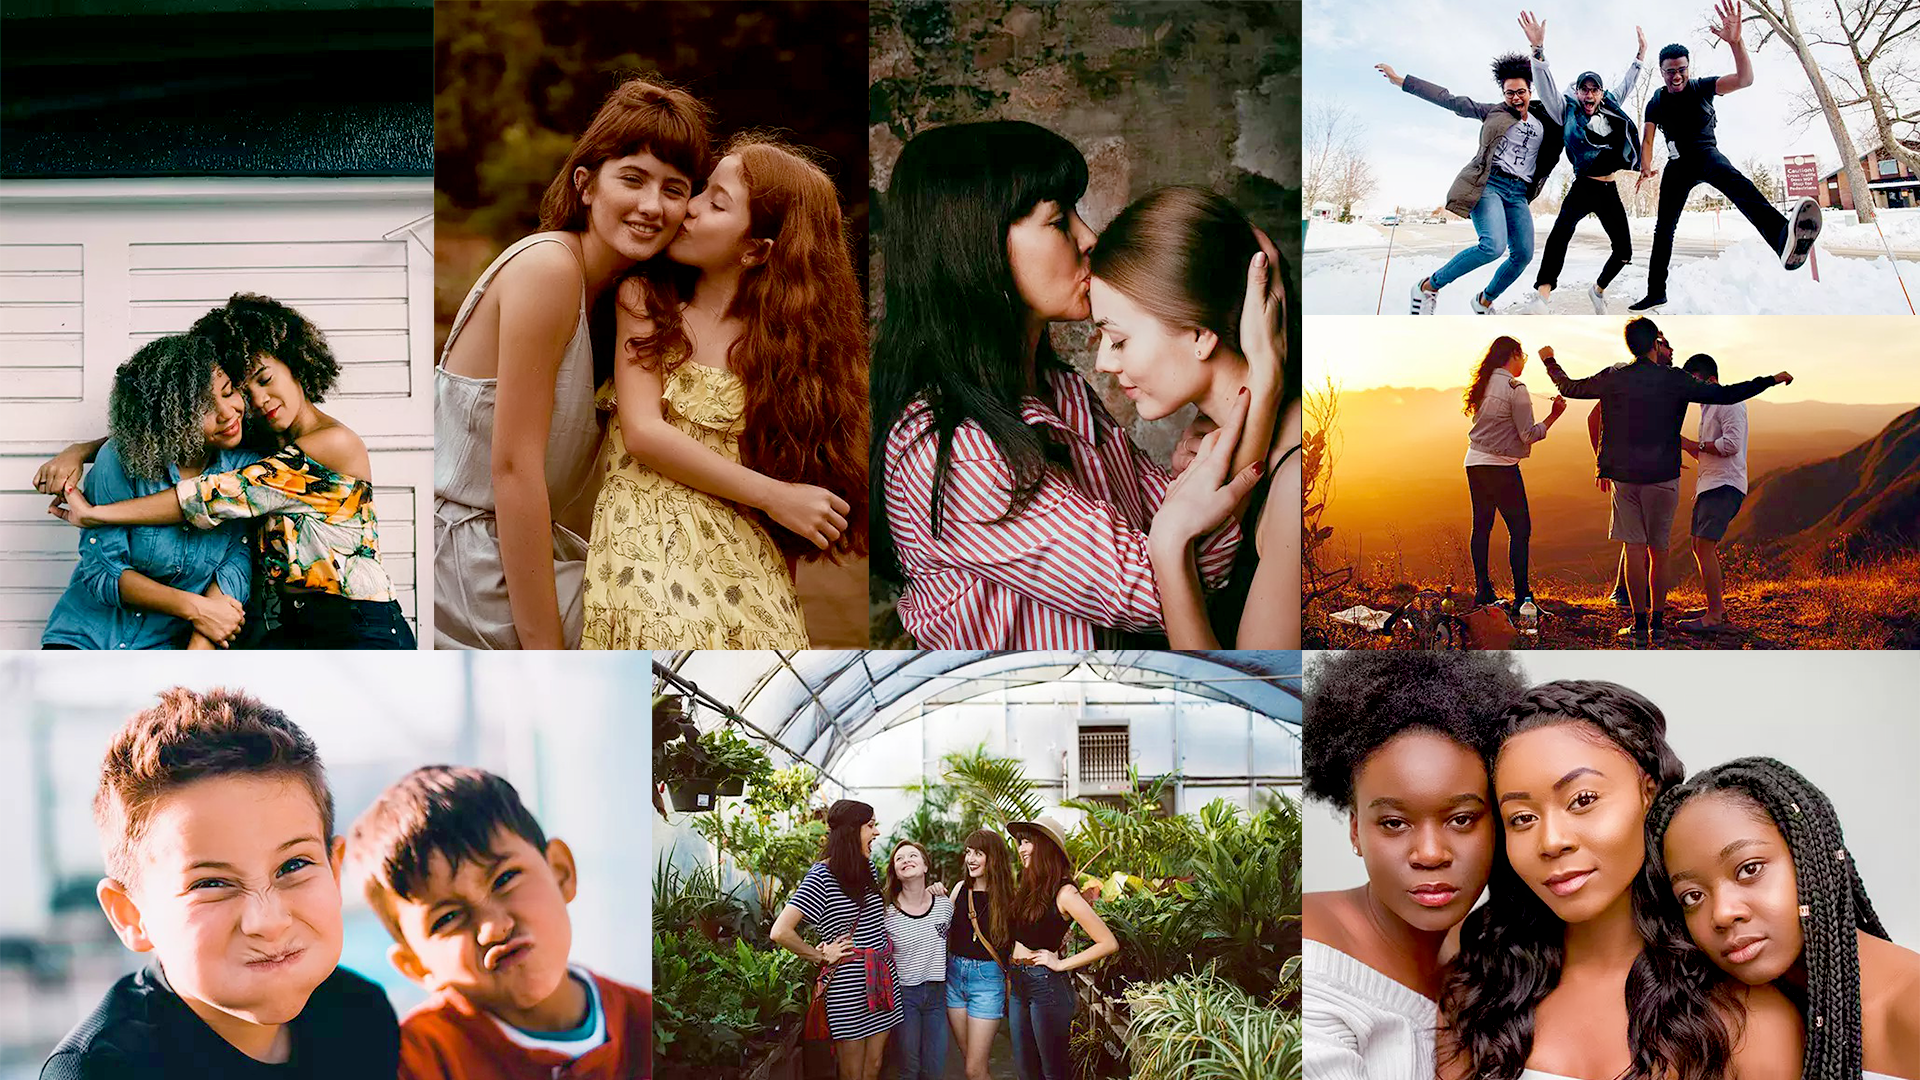 Best Friend Photoshoots Idea: How To Pose BFFs For Great Photos